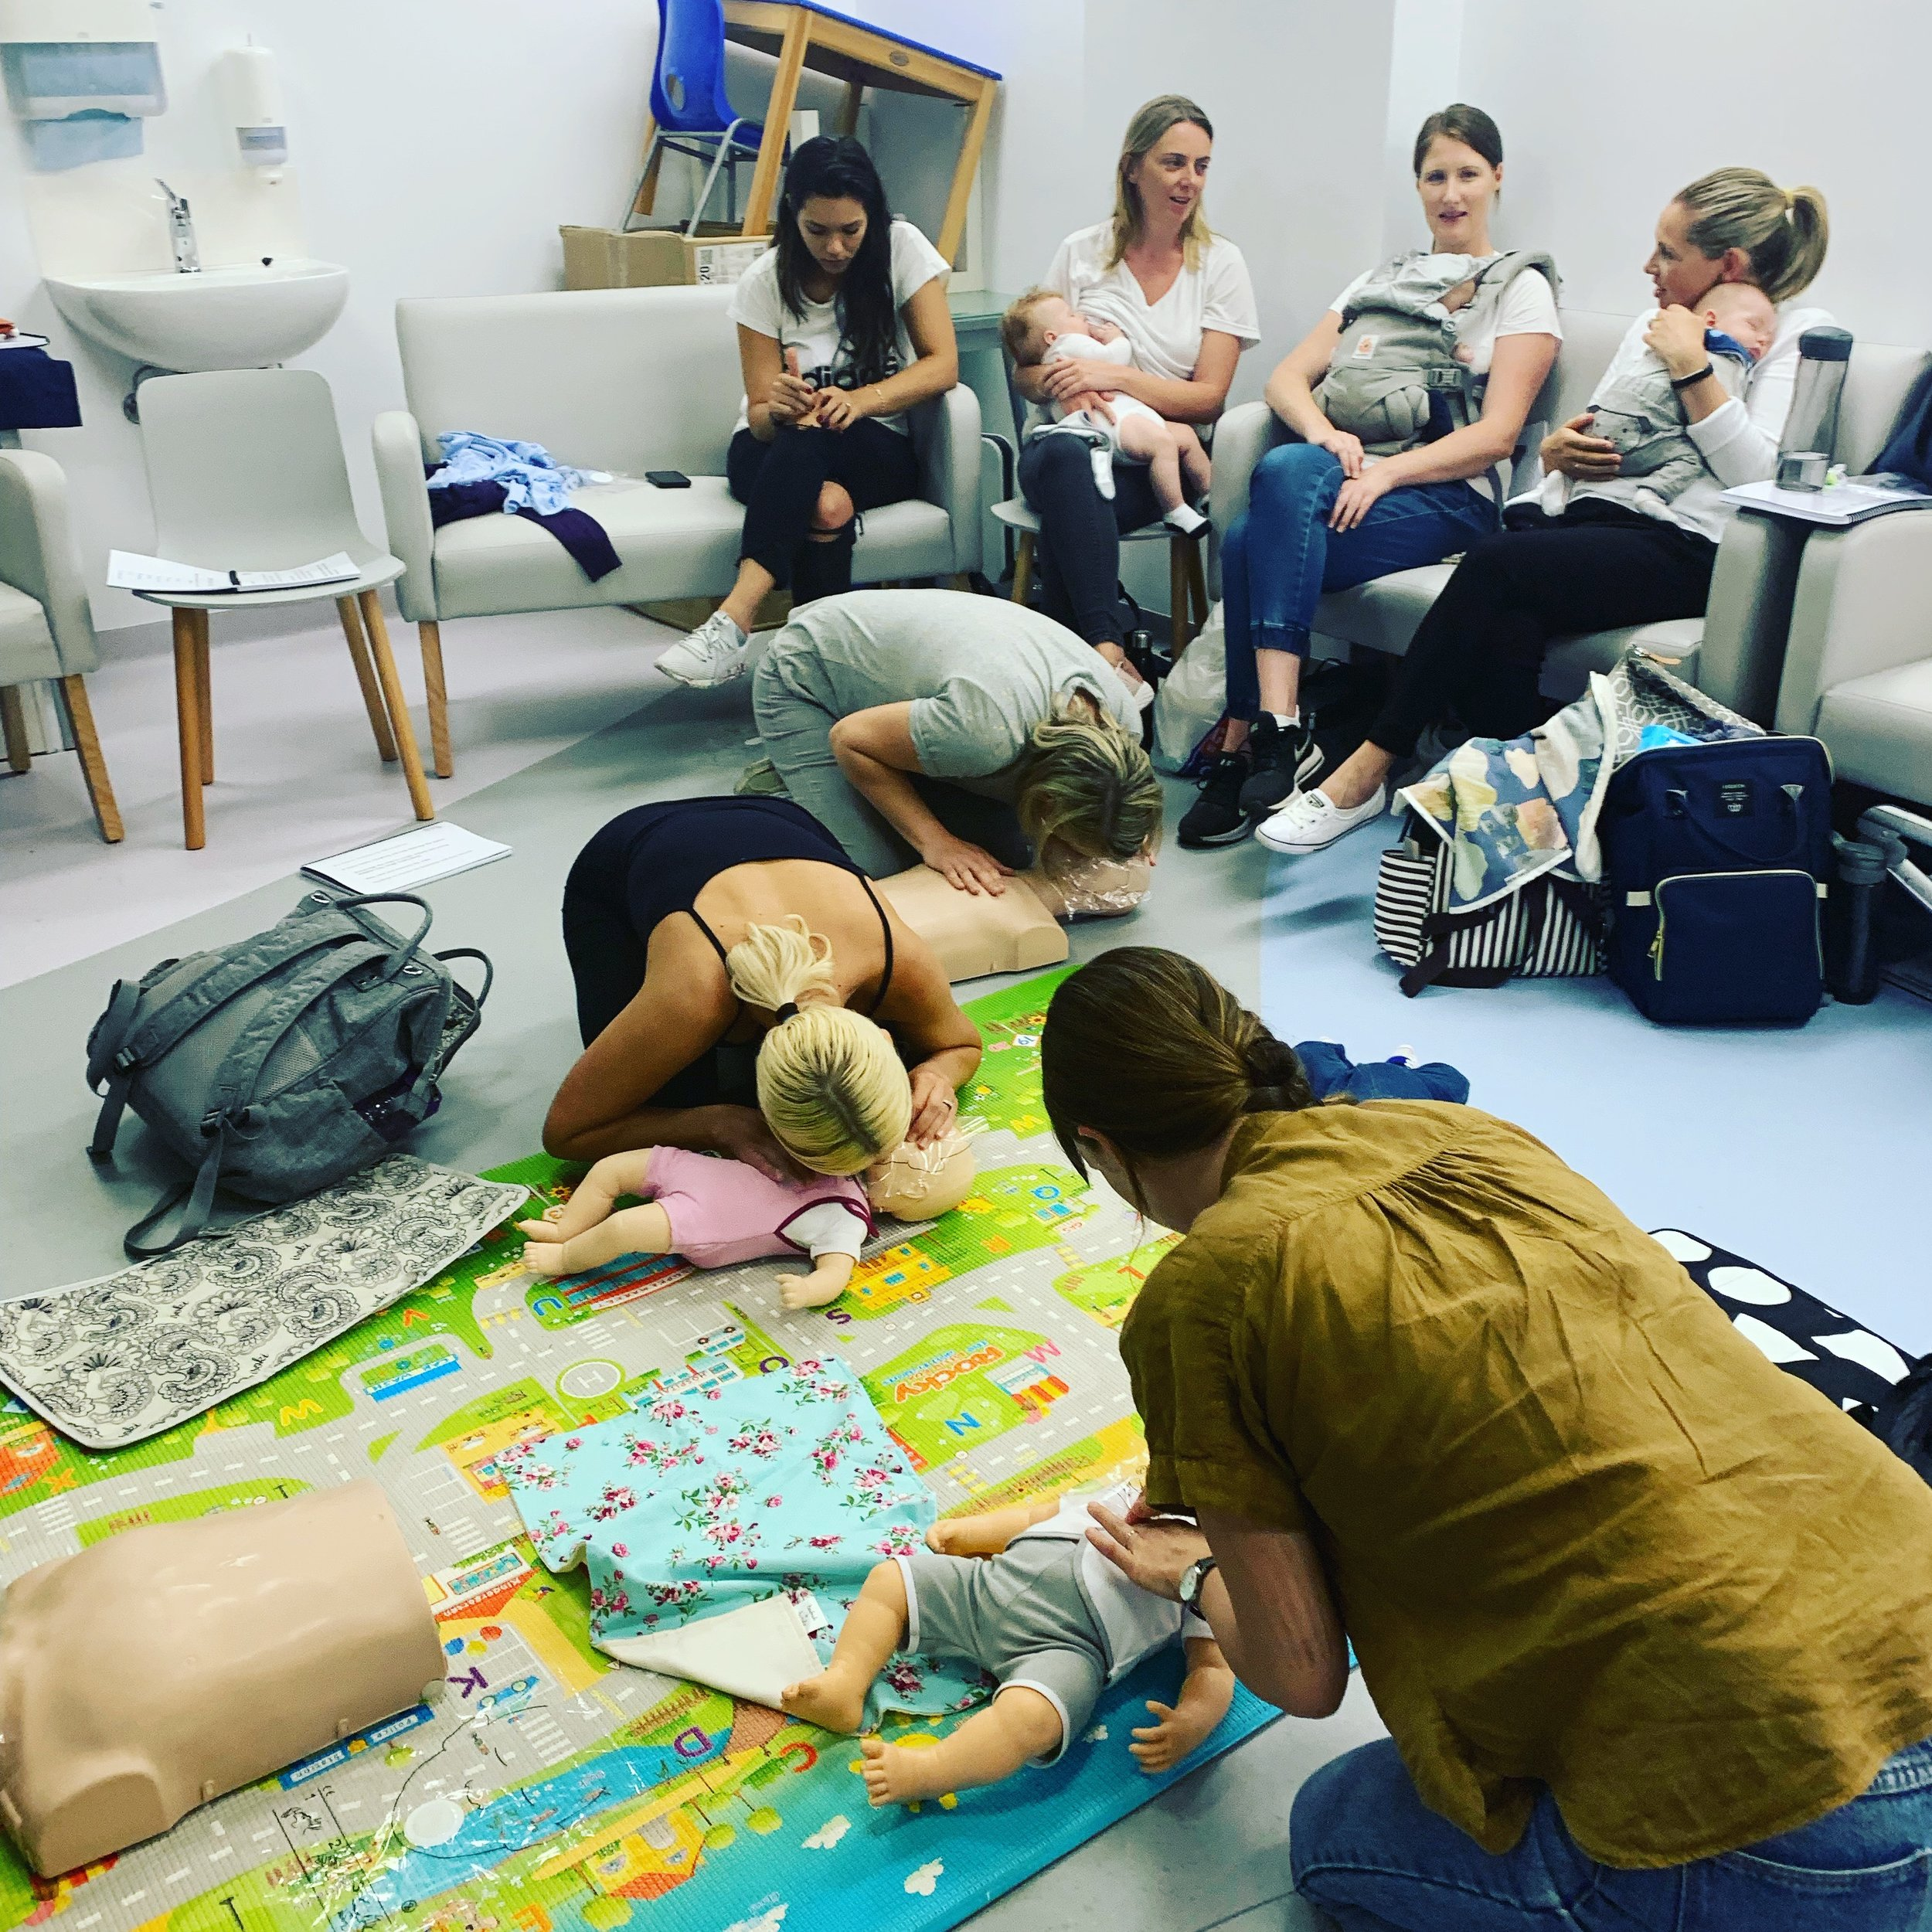 Our Classes - In our classes you will get hands on skills with our manikins, administer an Epipen and wrap a triangular bandage just for starters!Come armed with all your questions for us too on everything child health related.